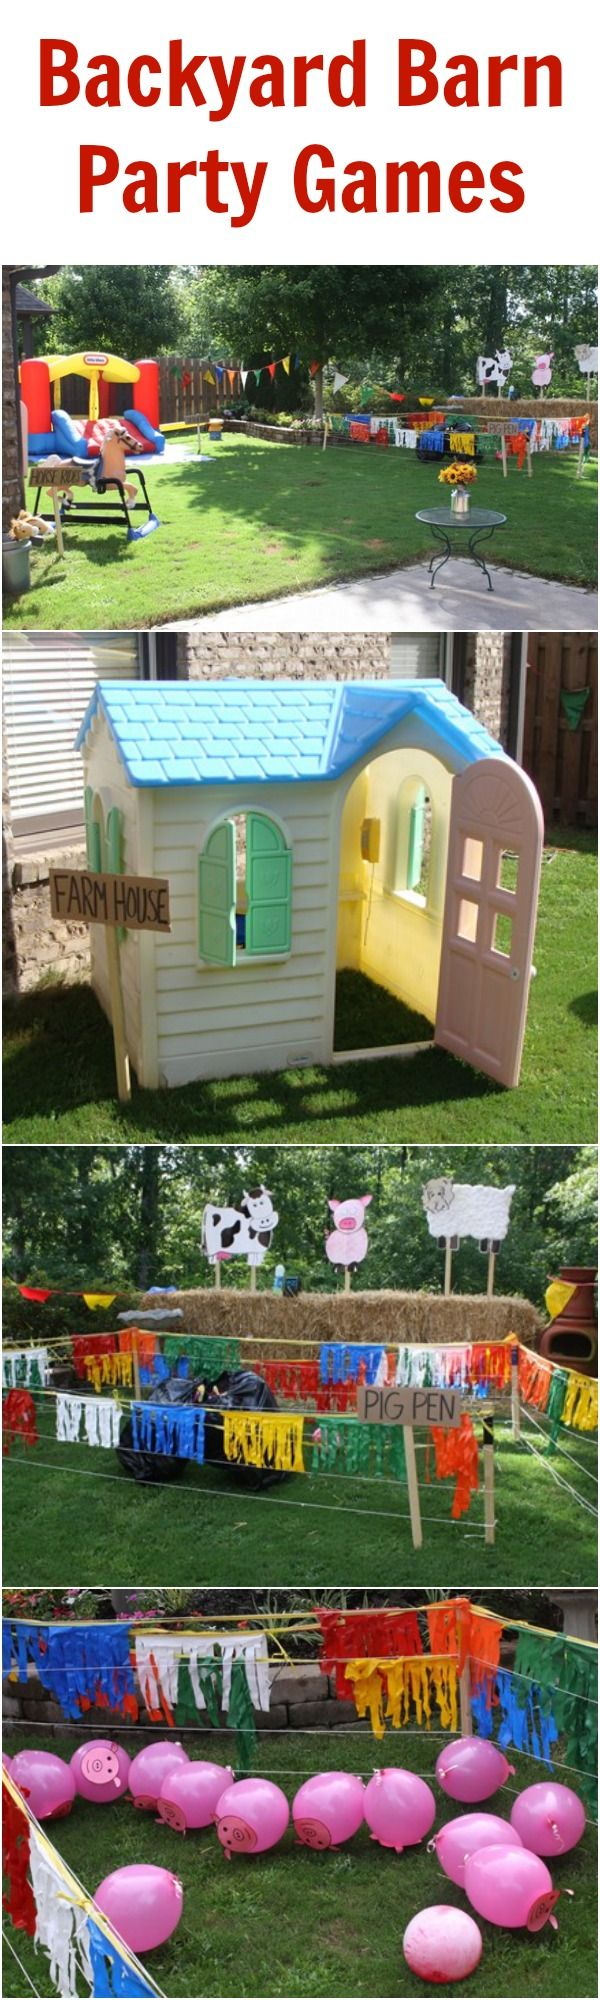 Fun barnyard games that you can play with stuff around your house! Perfect for a barnyard party or for plain old backyard fun!